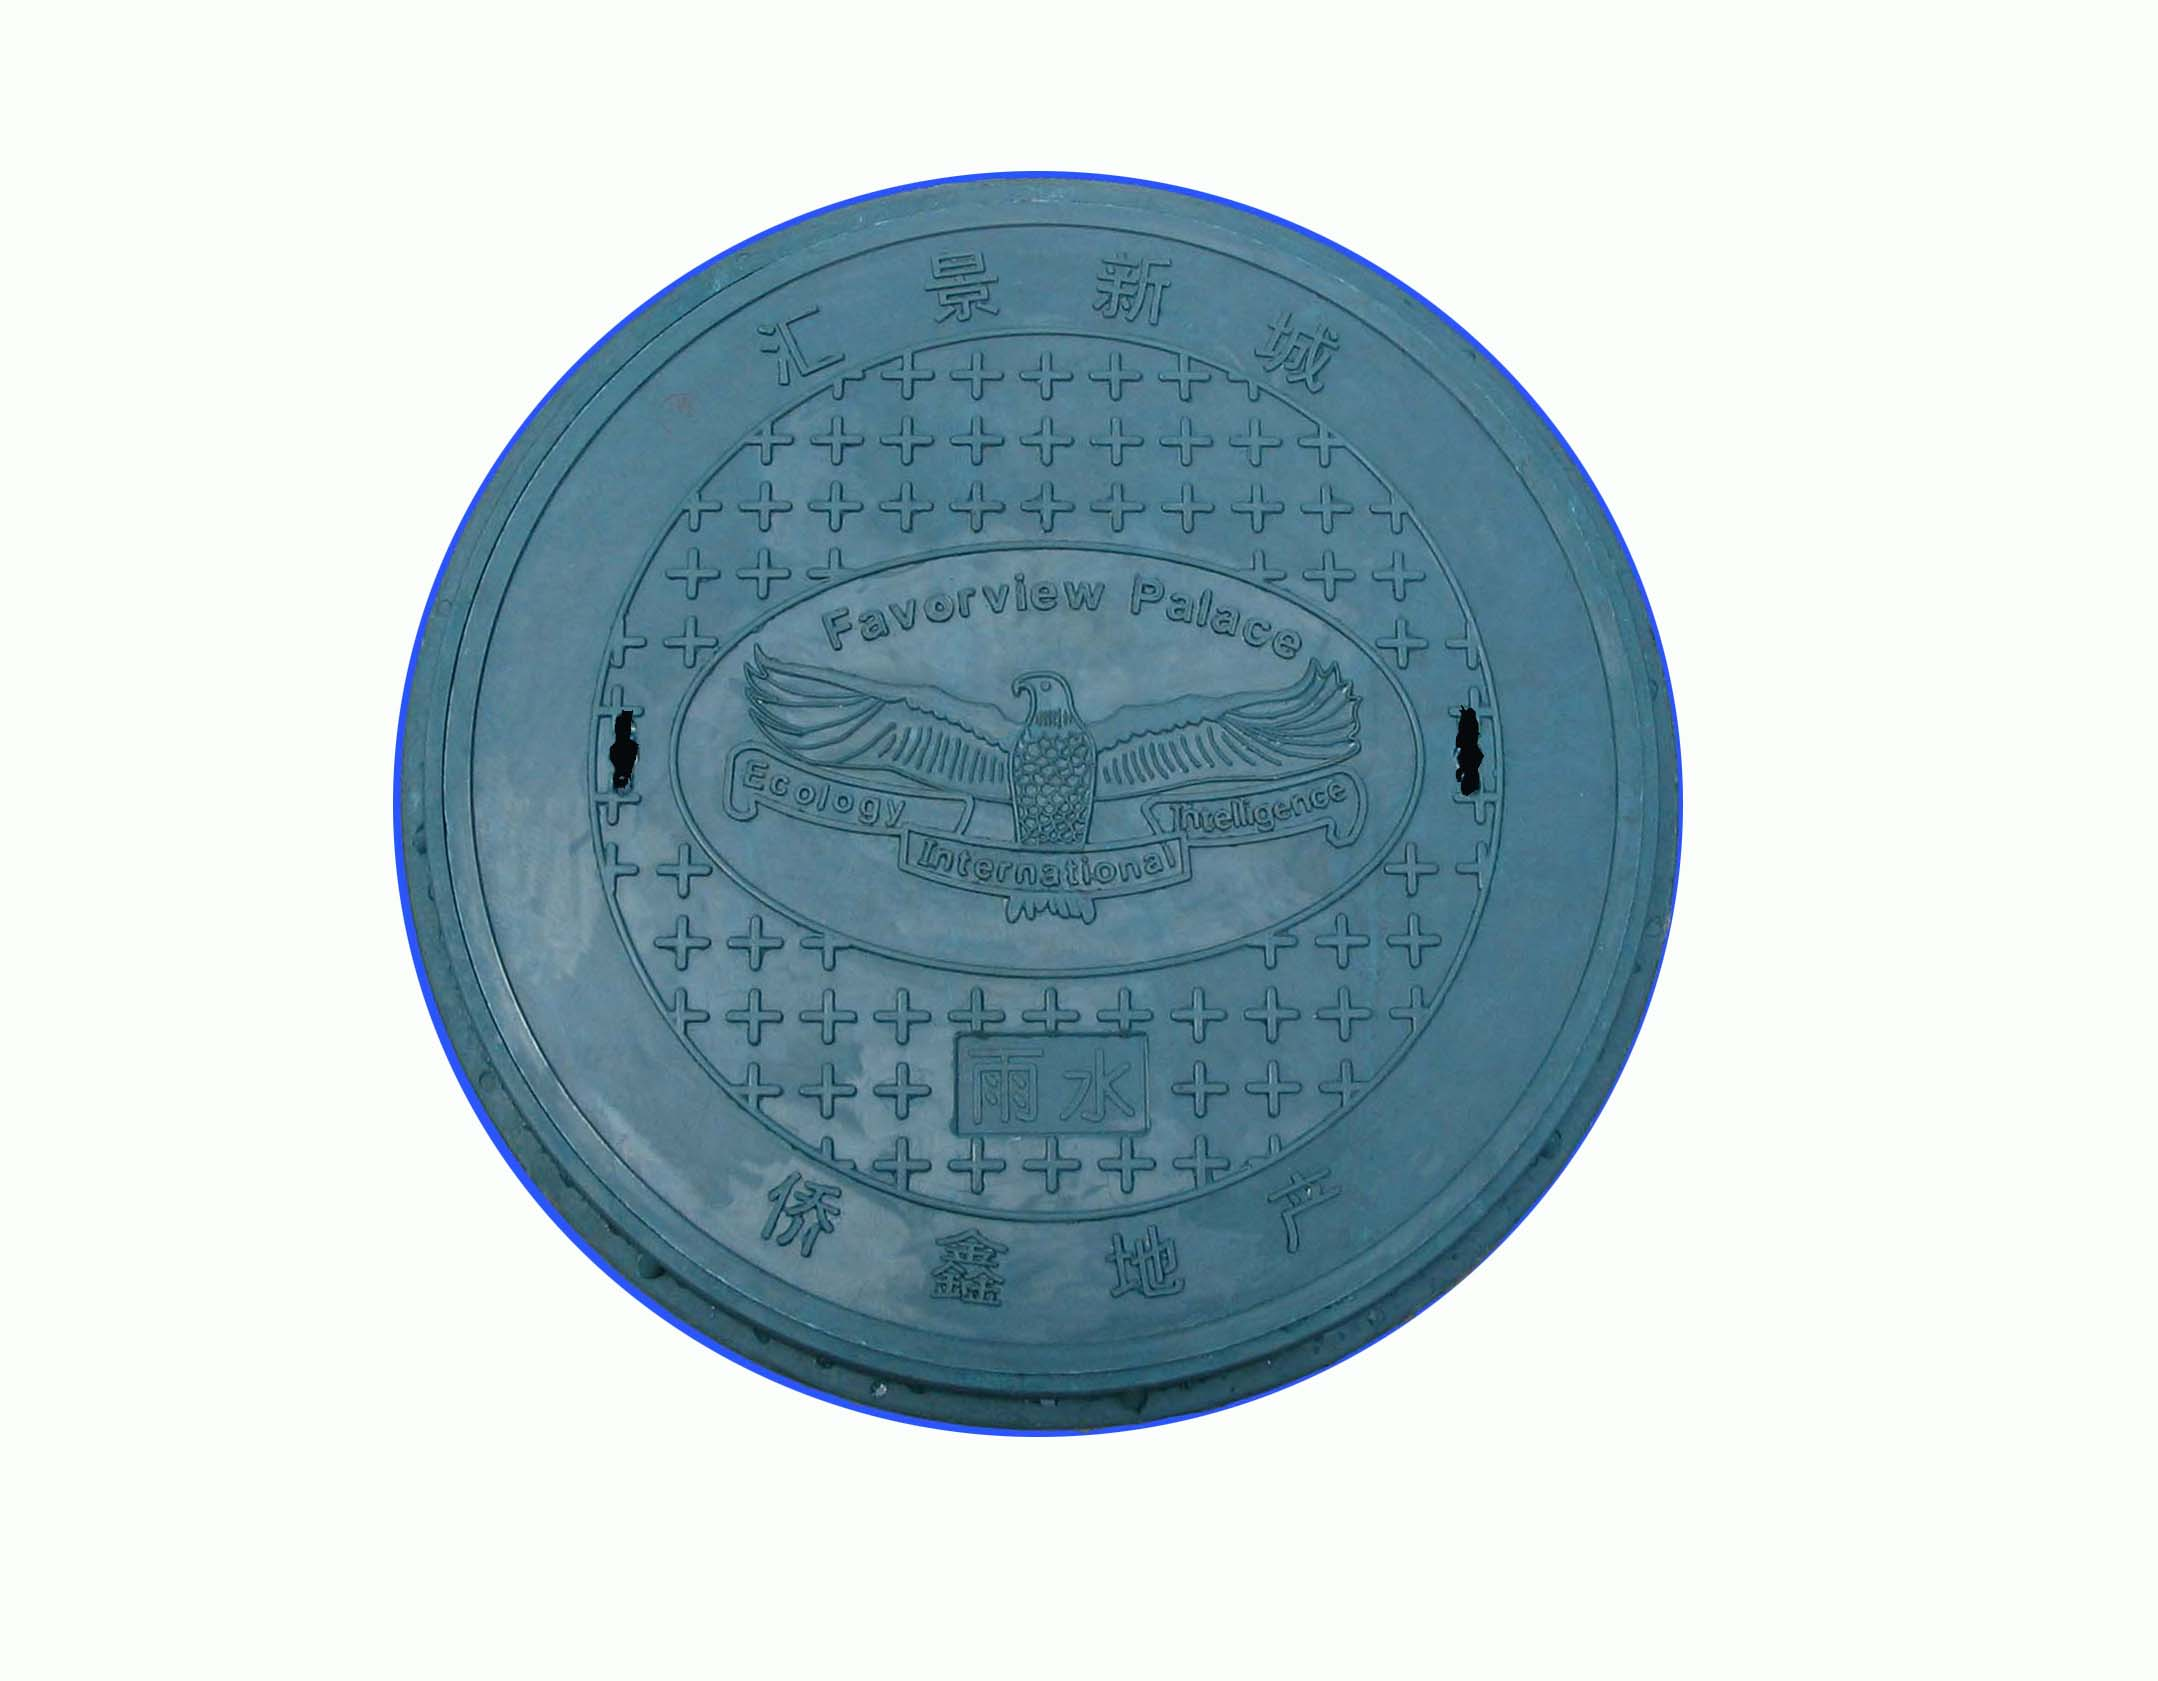 70030mm round SMC sheet manhole cover with CE certificate